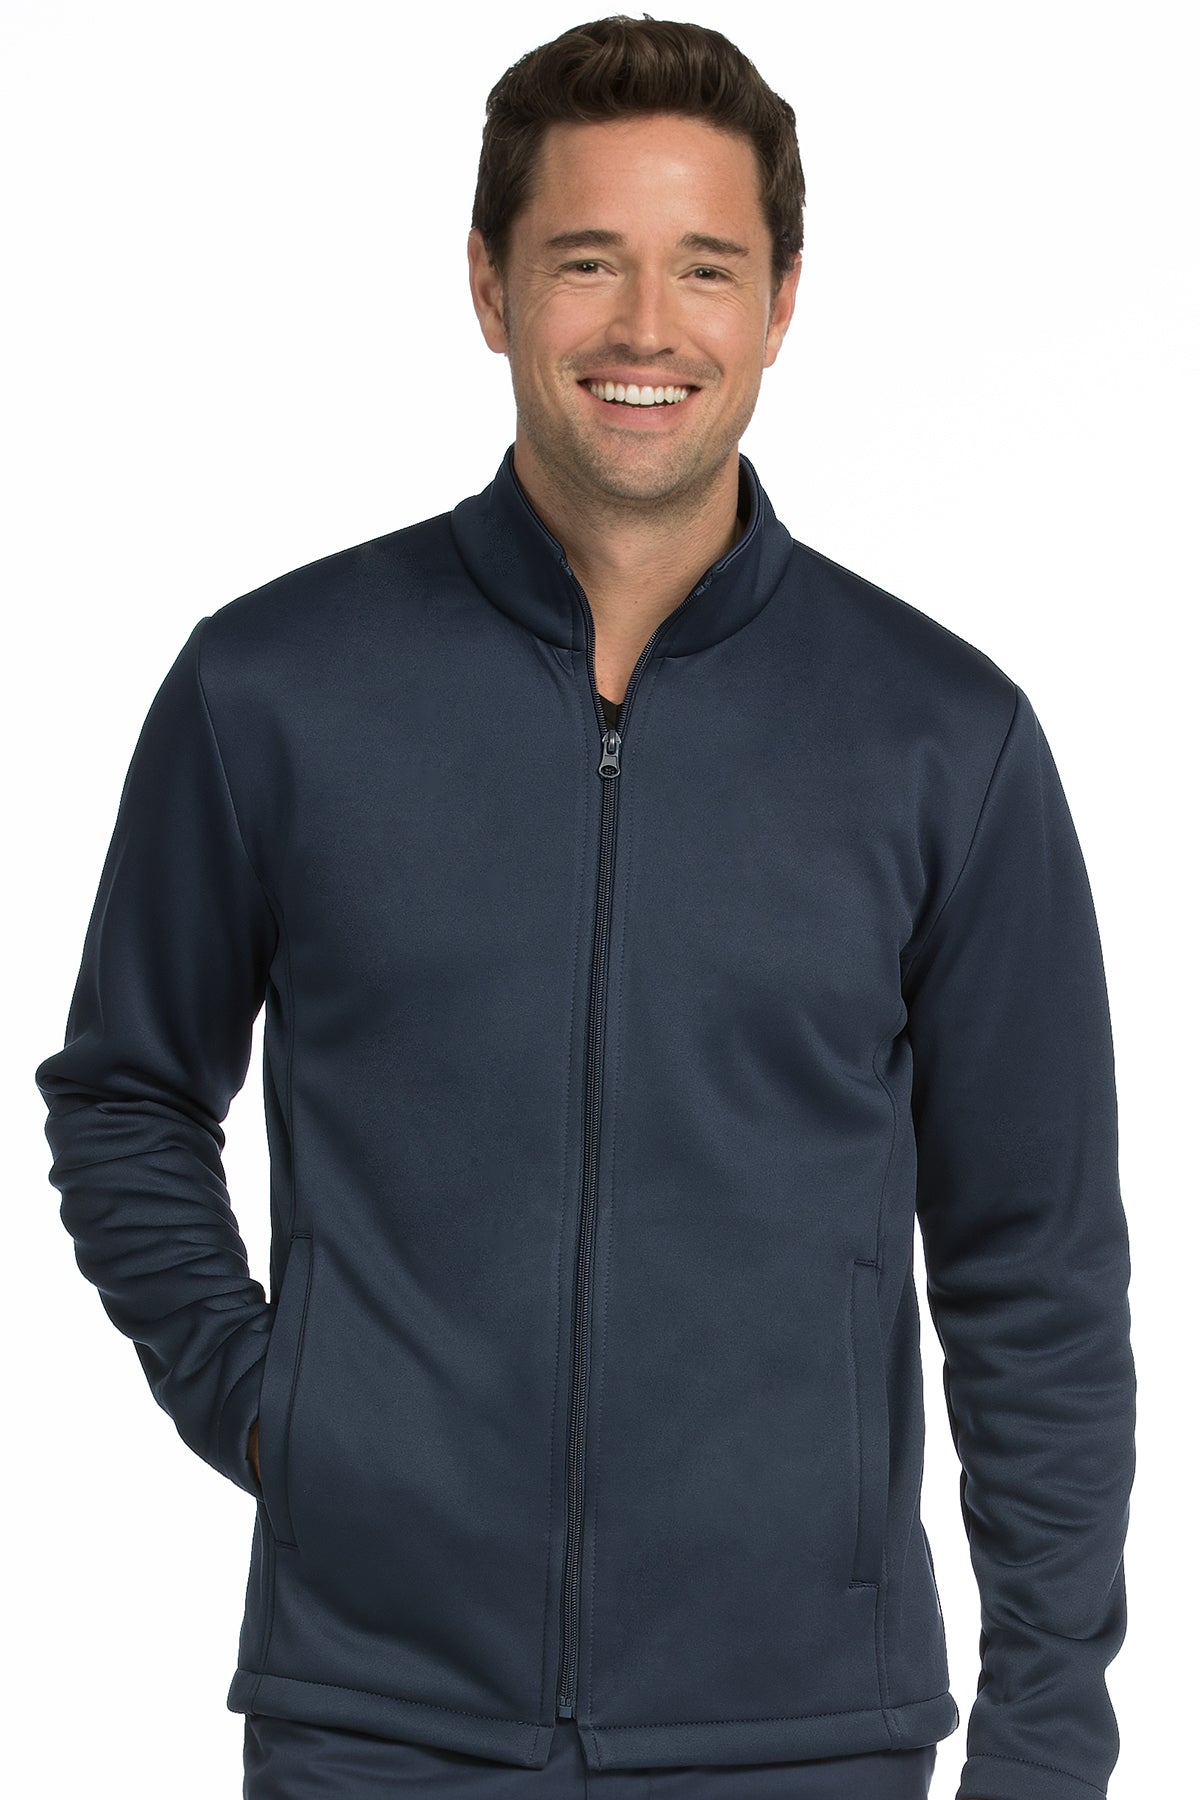 Medcouture Men's Navy Fleece Scrub Jacket- 8688